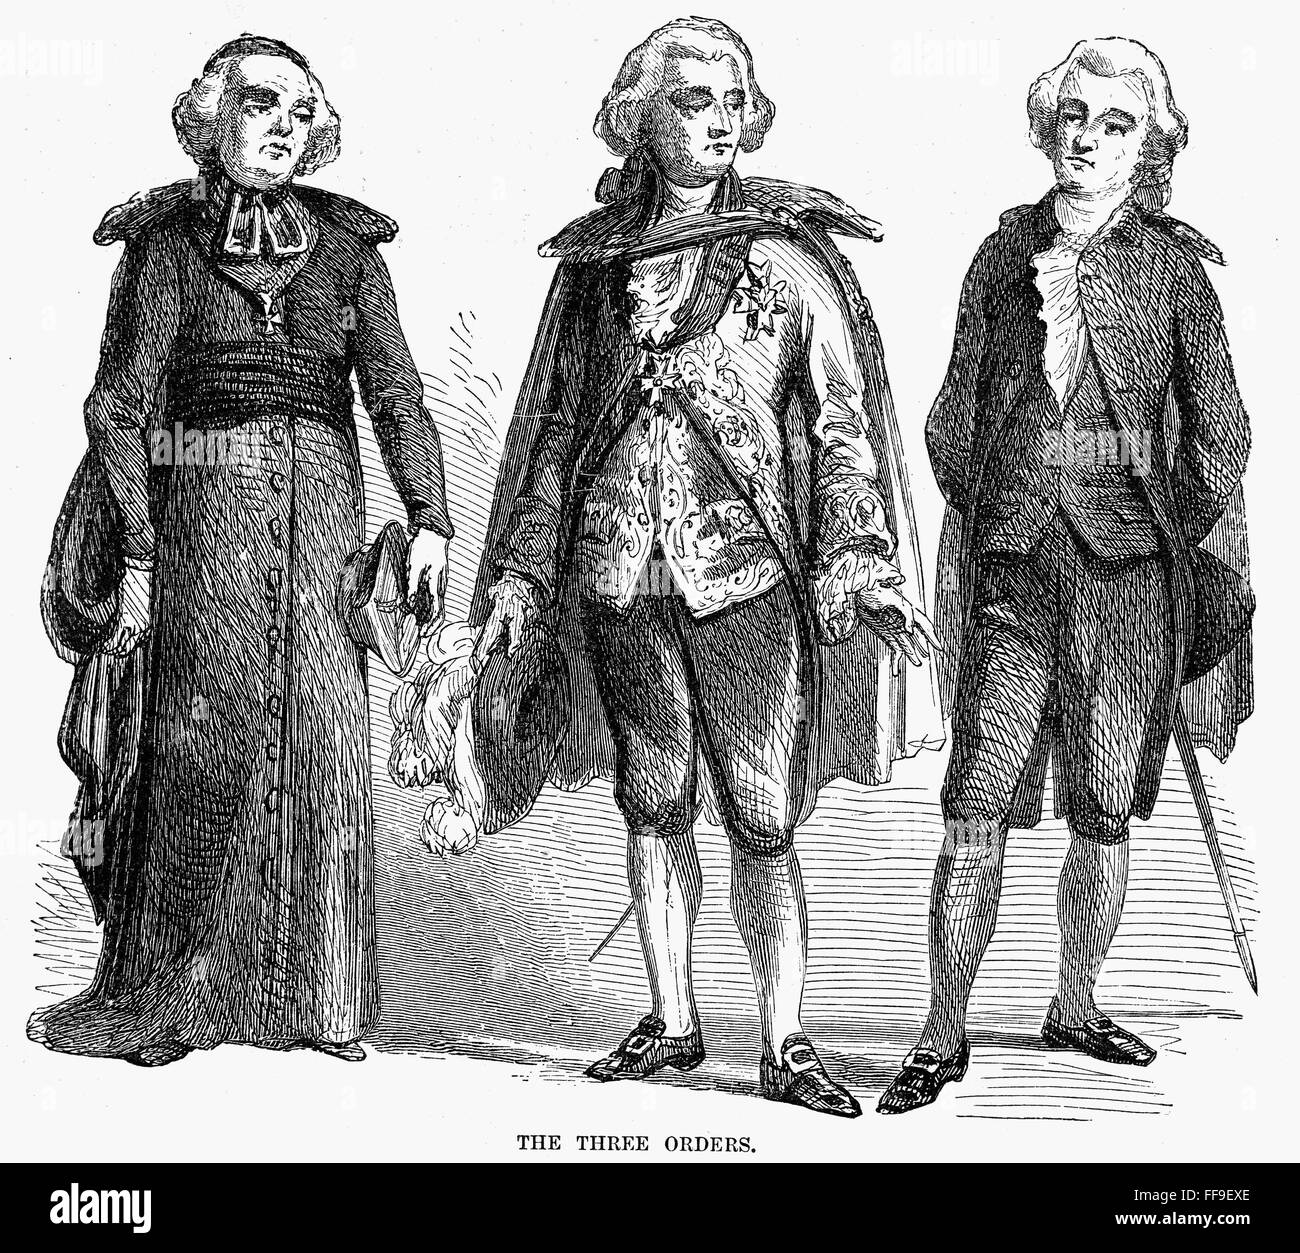 french society orders nthe orders of the clergy nobility and french society orders nthe orders of the clergy nobility and middle class in 18th century pre revolutionary wood engraving american